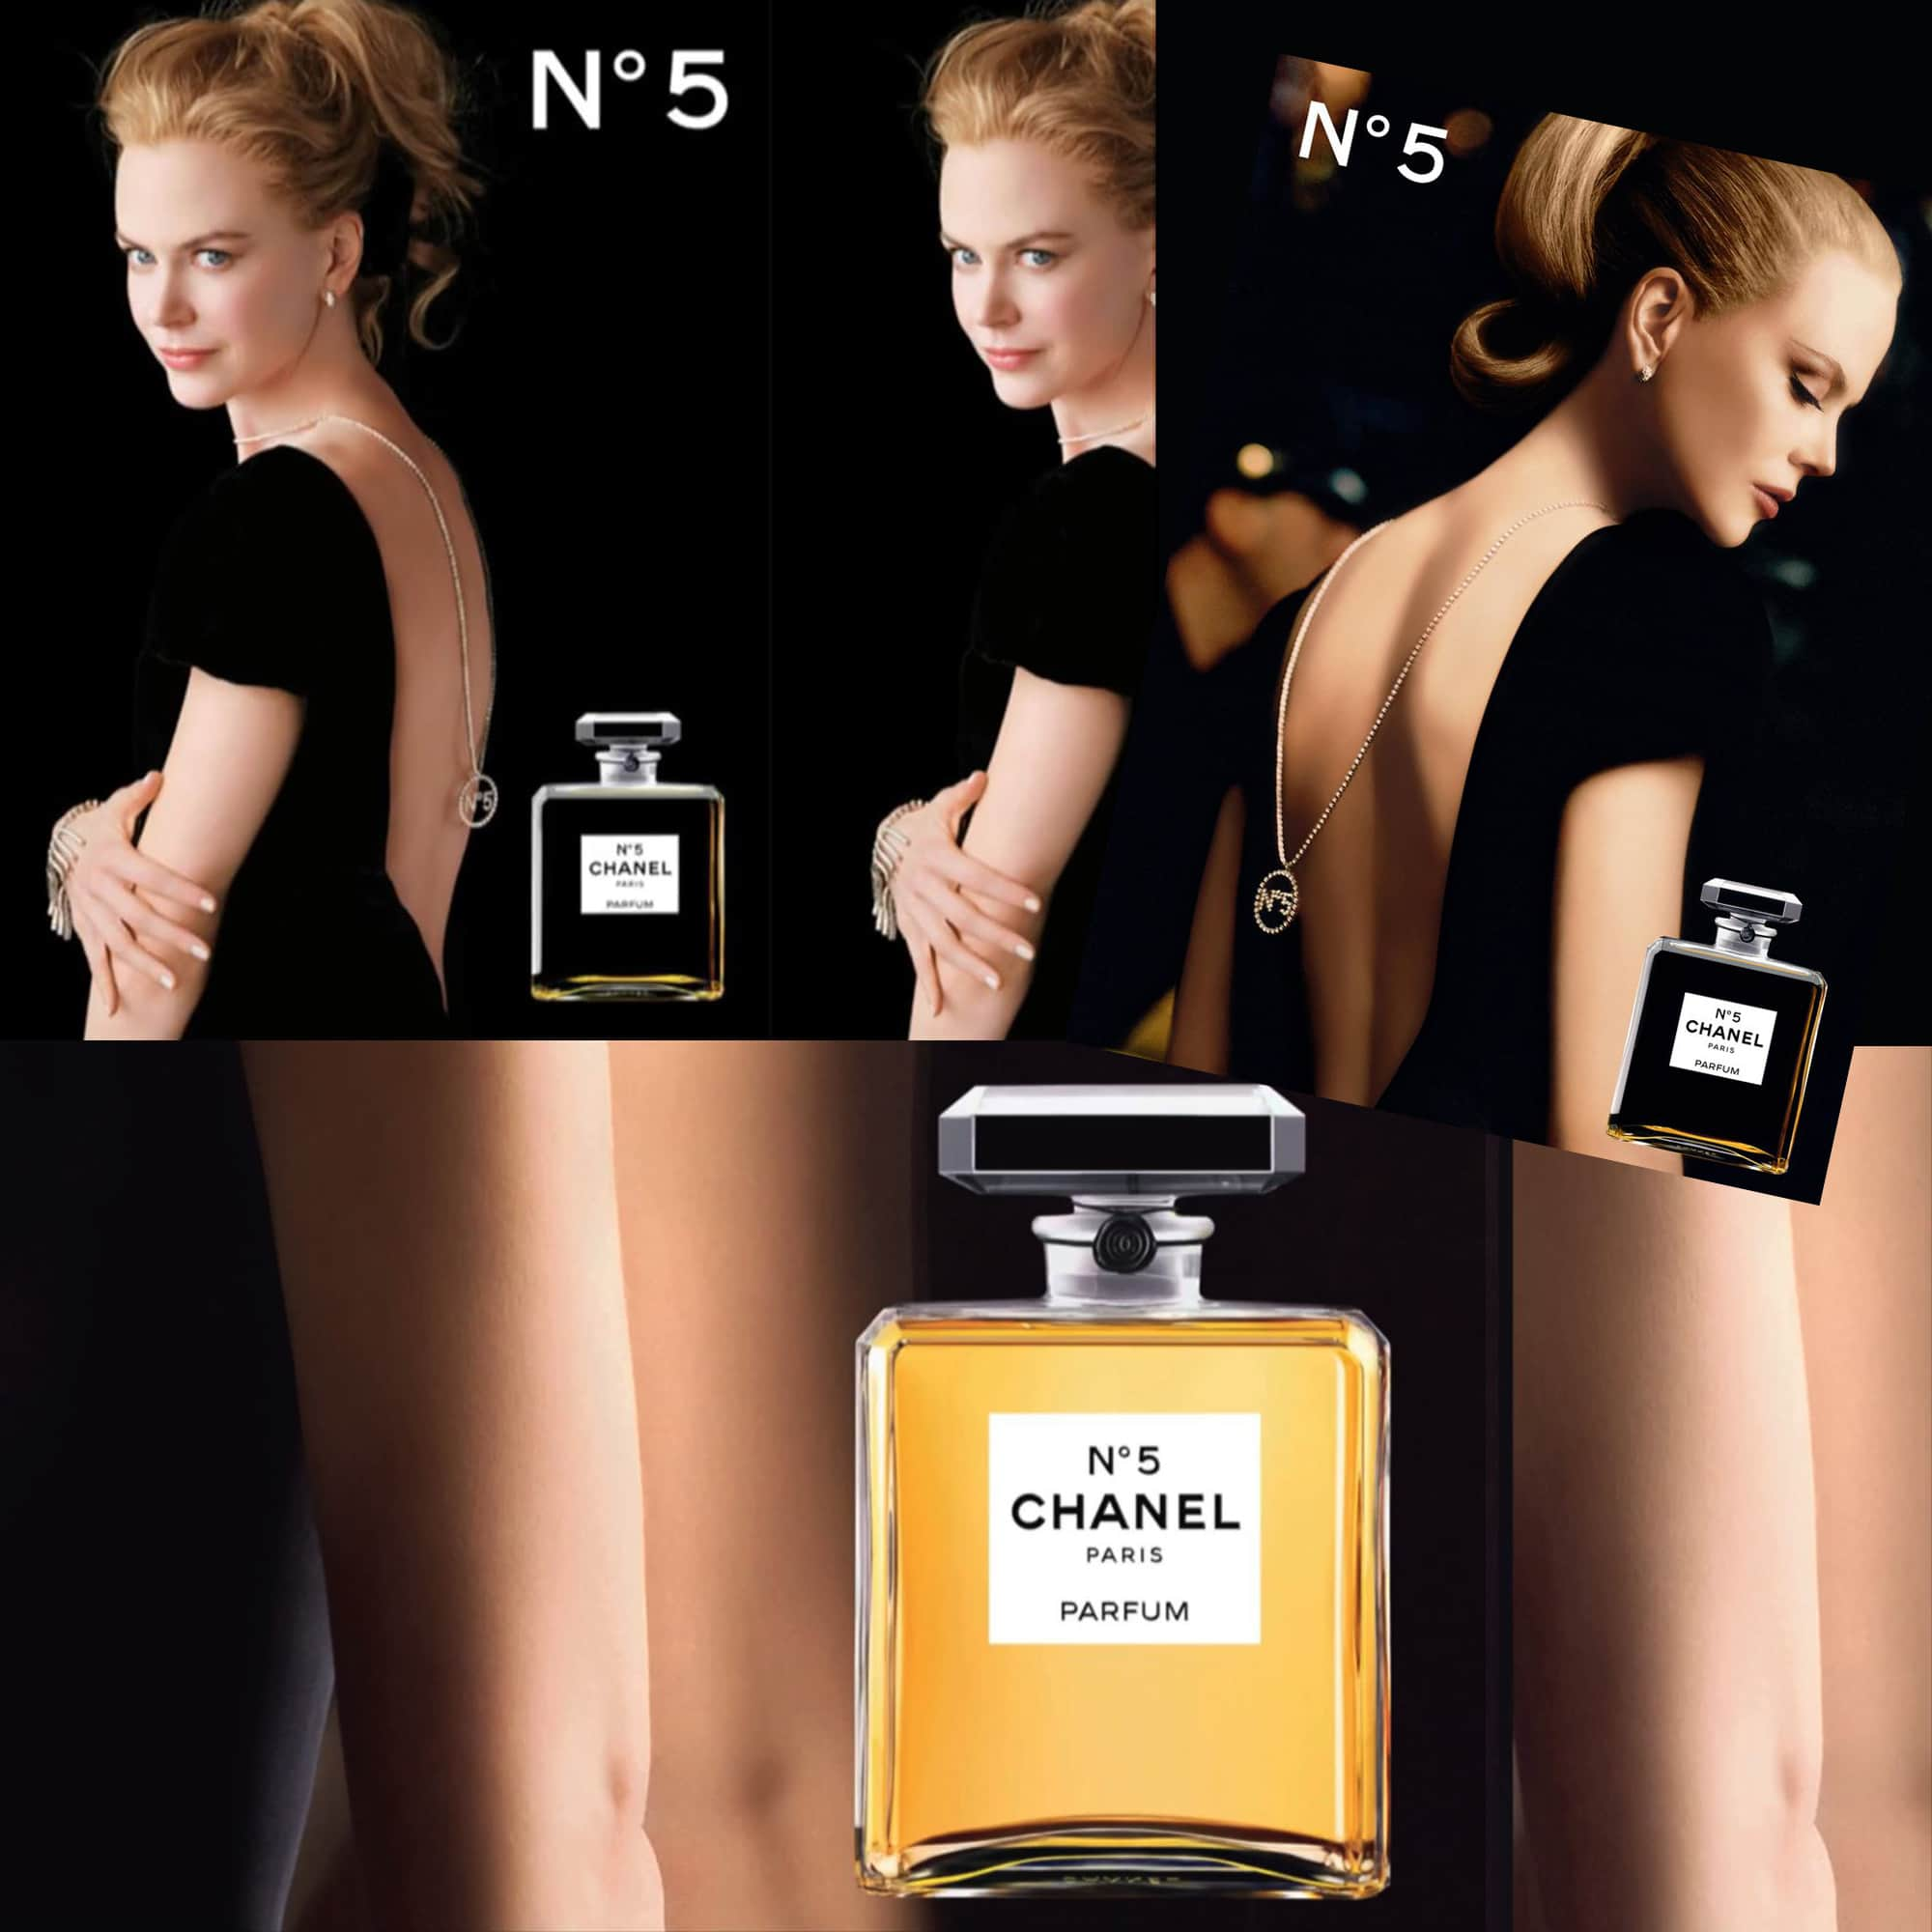 CHANEL 5 perfume - Tresors INPI - Nicole Kidman for CHANEL by RUNWAY MAGAZINE